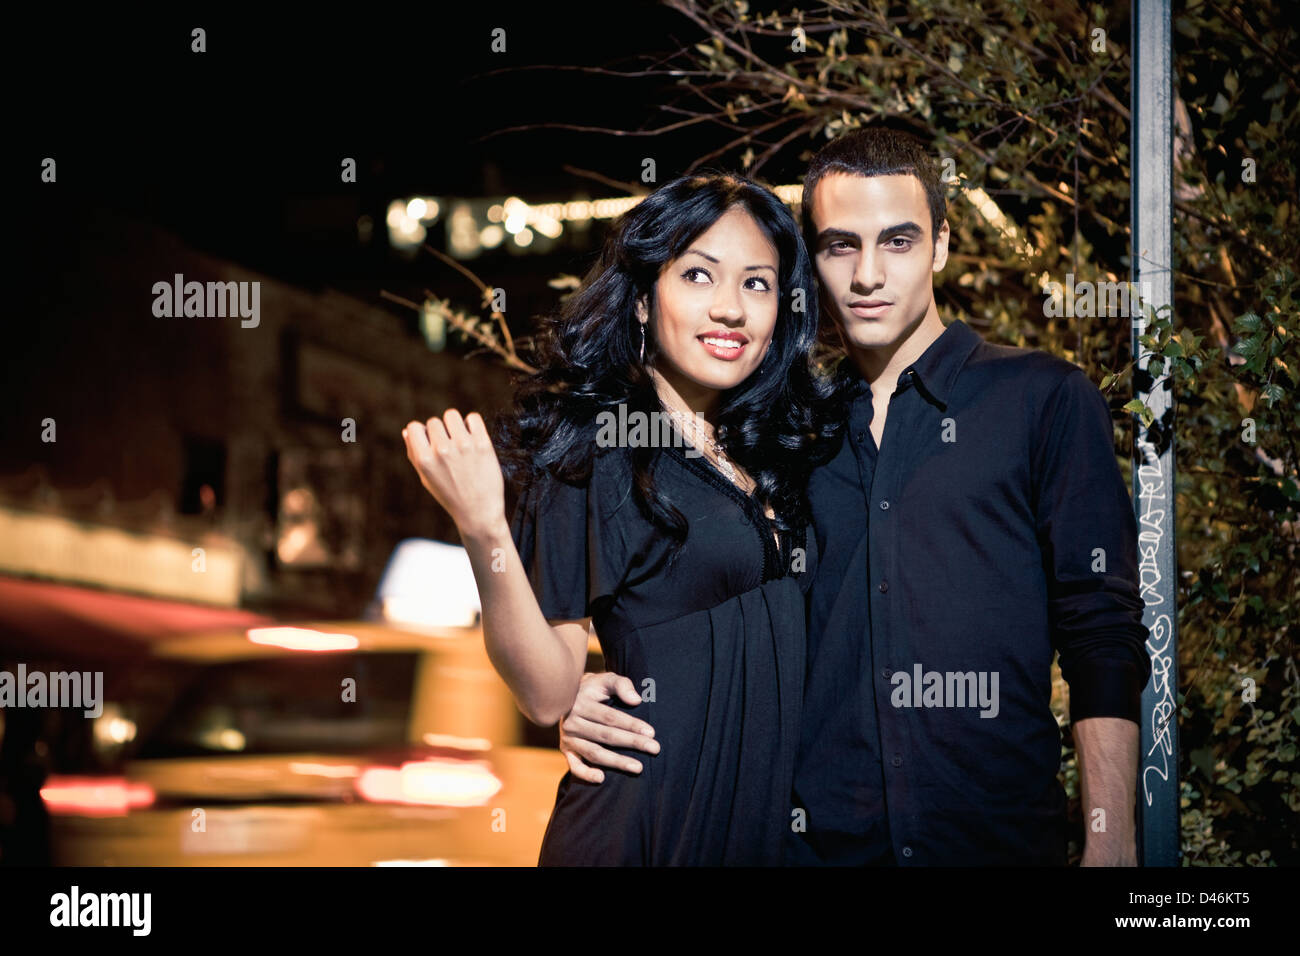 A glamorous and fashionable young couple on a night out - Stock Image